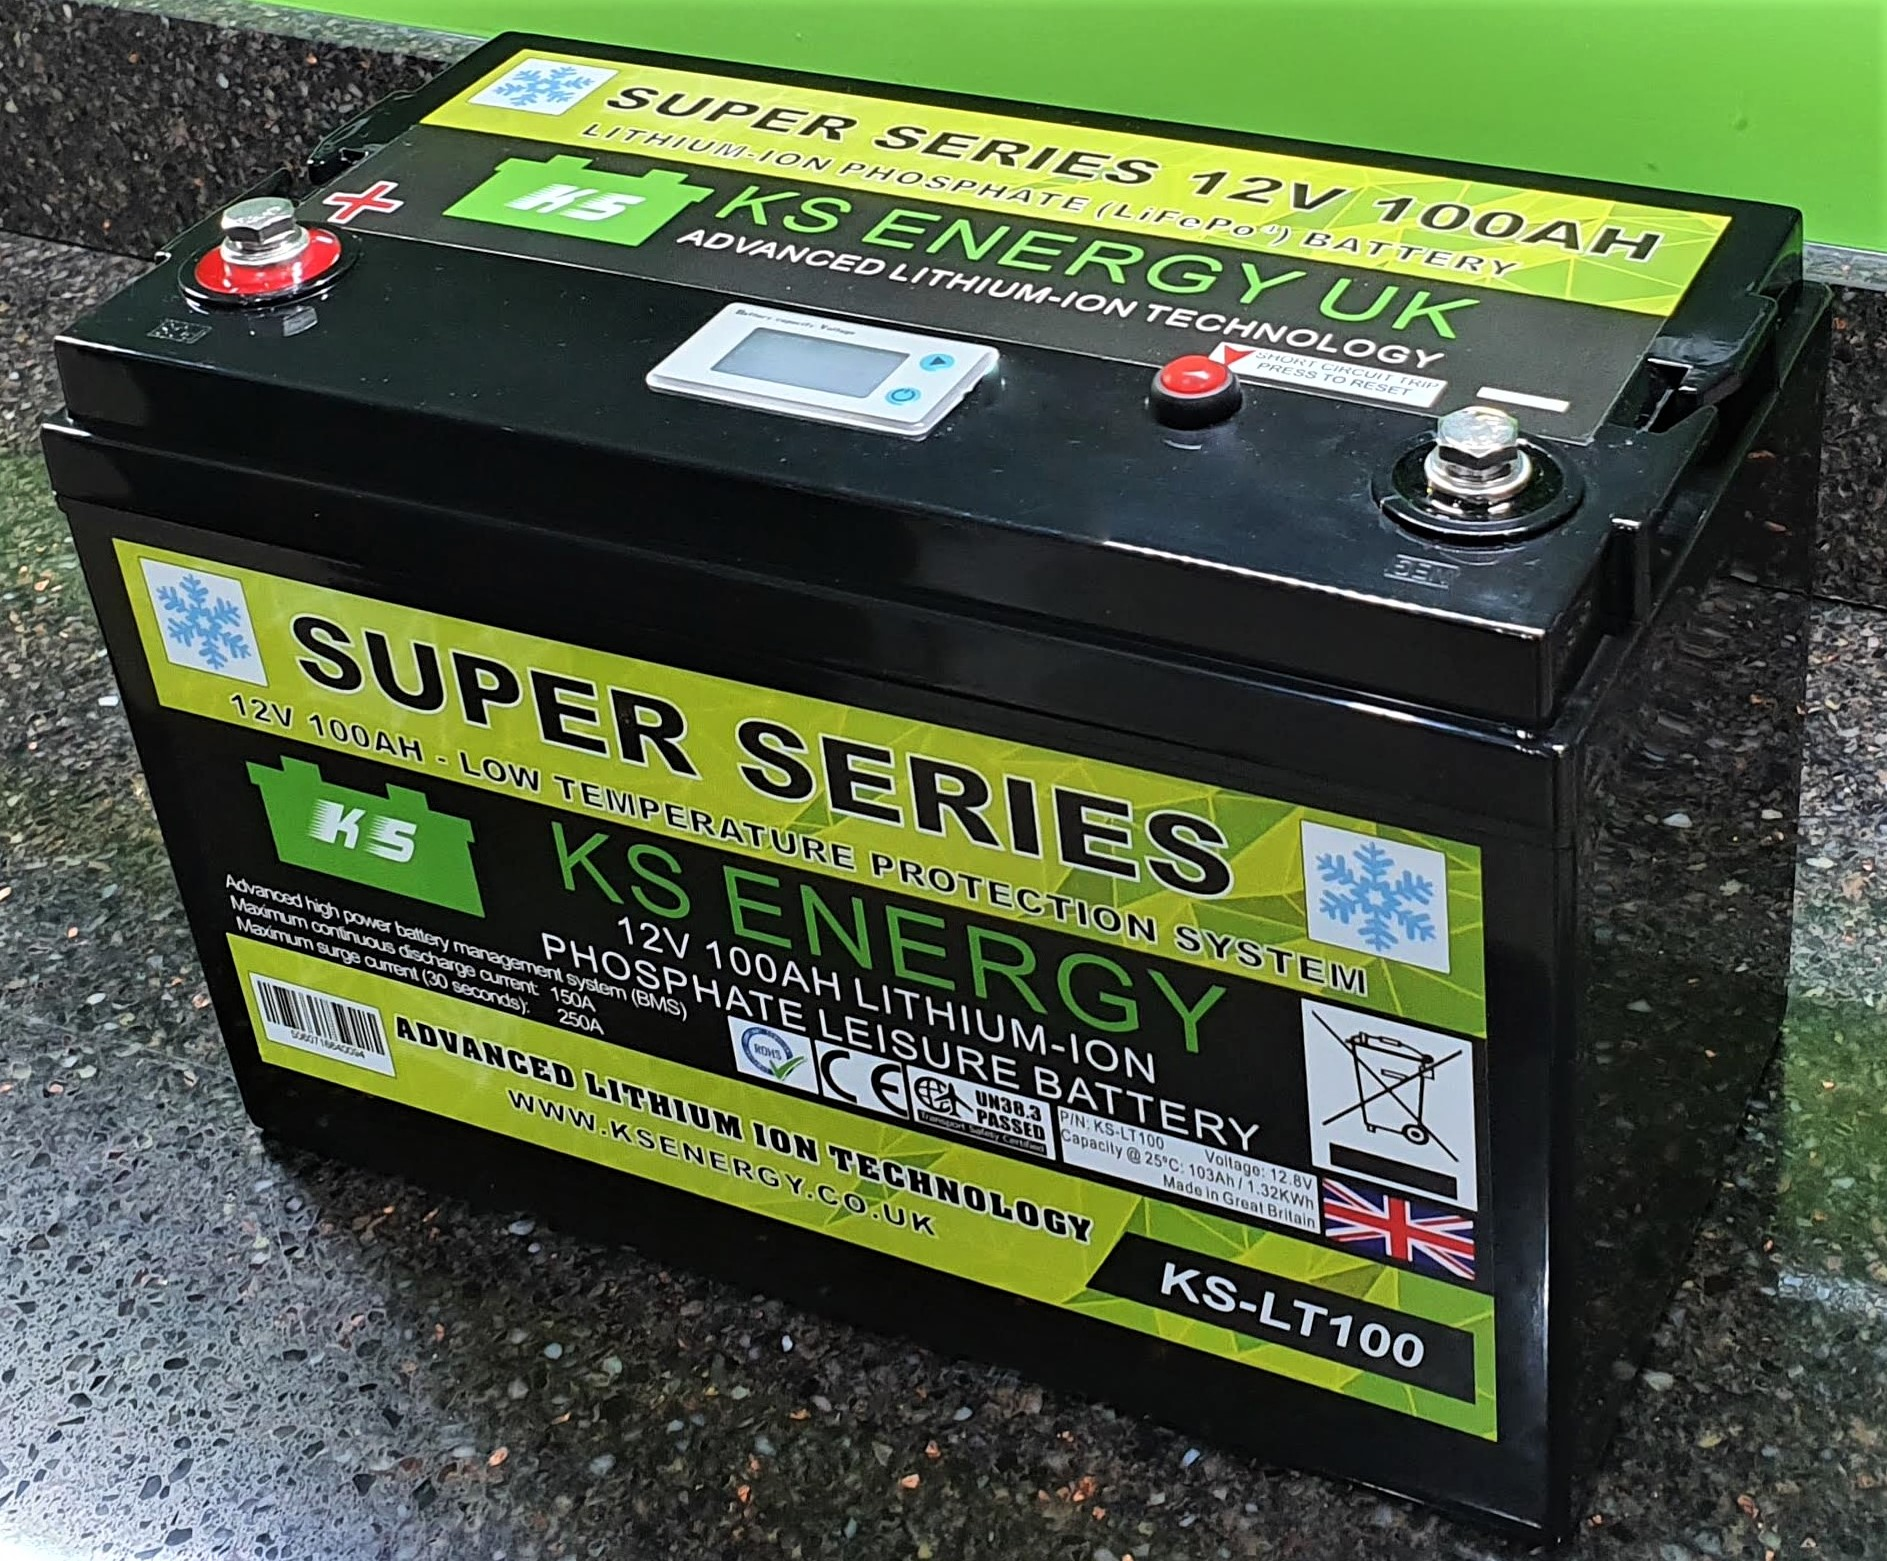 Model KS-LT100 12V 100AH Low Temperature protected High Current lithium battery